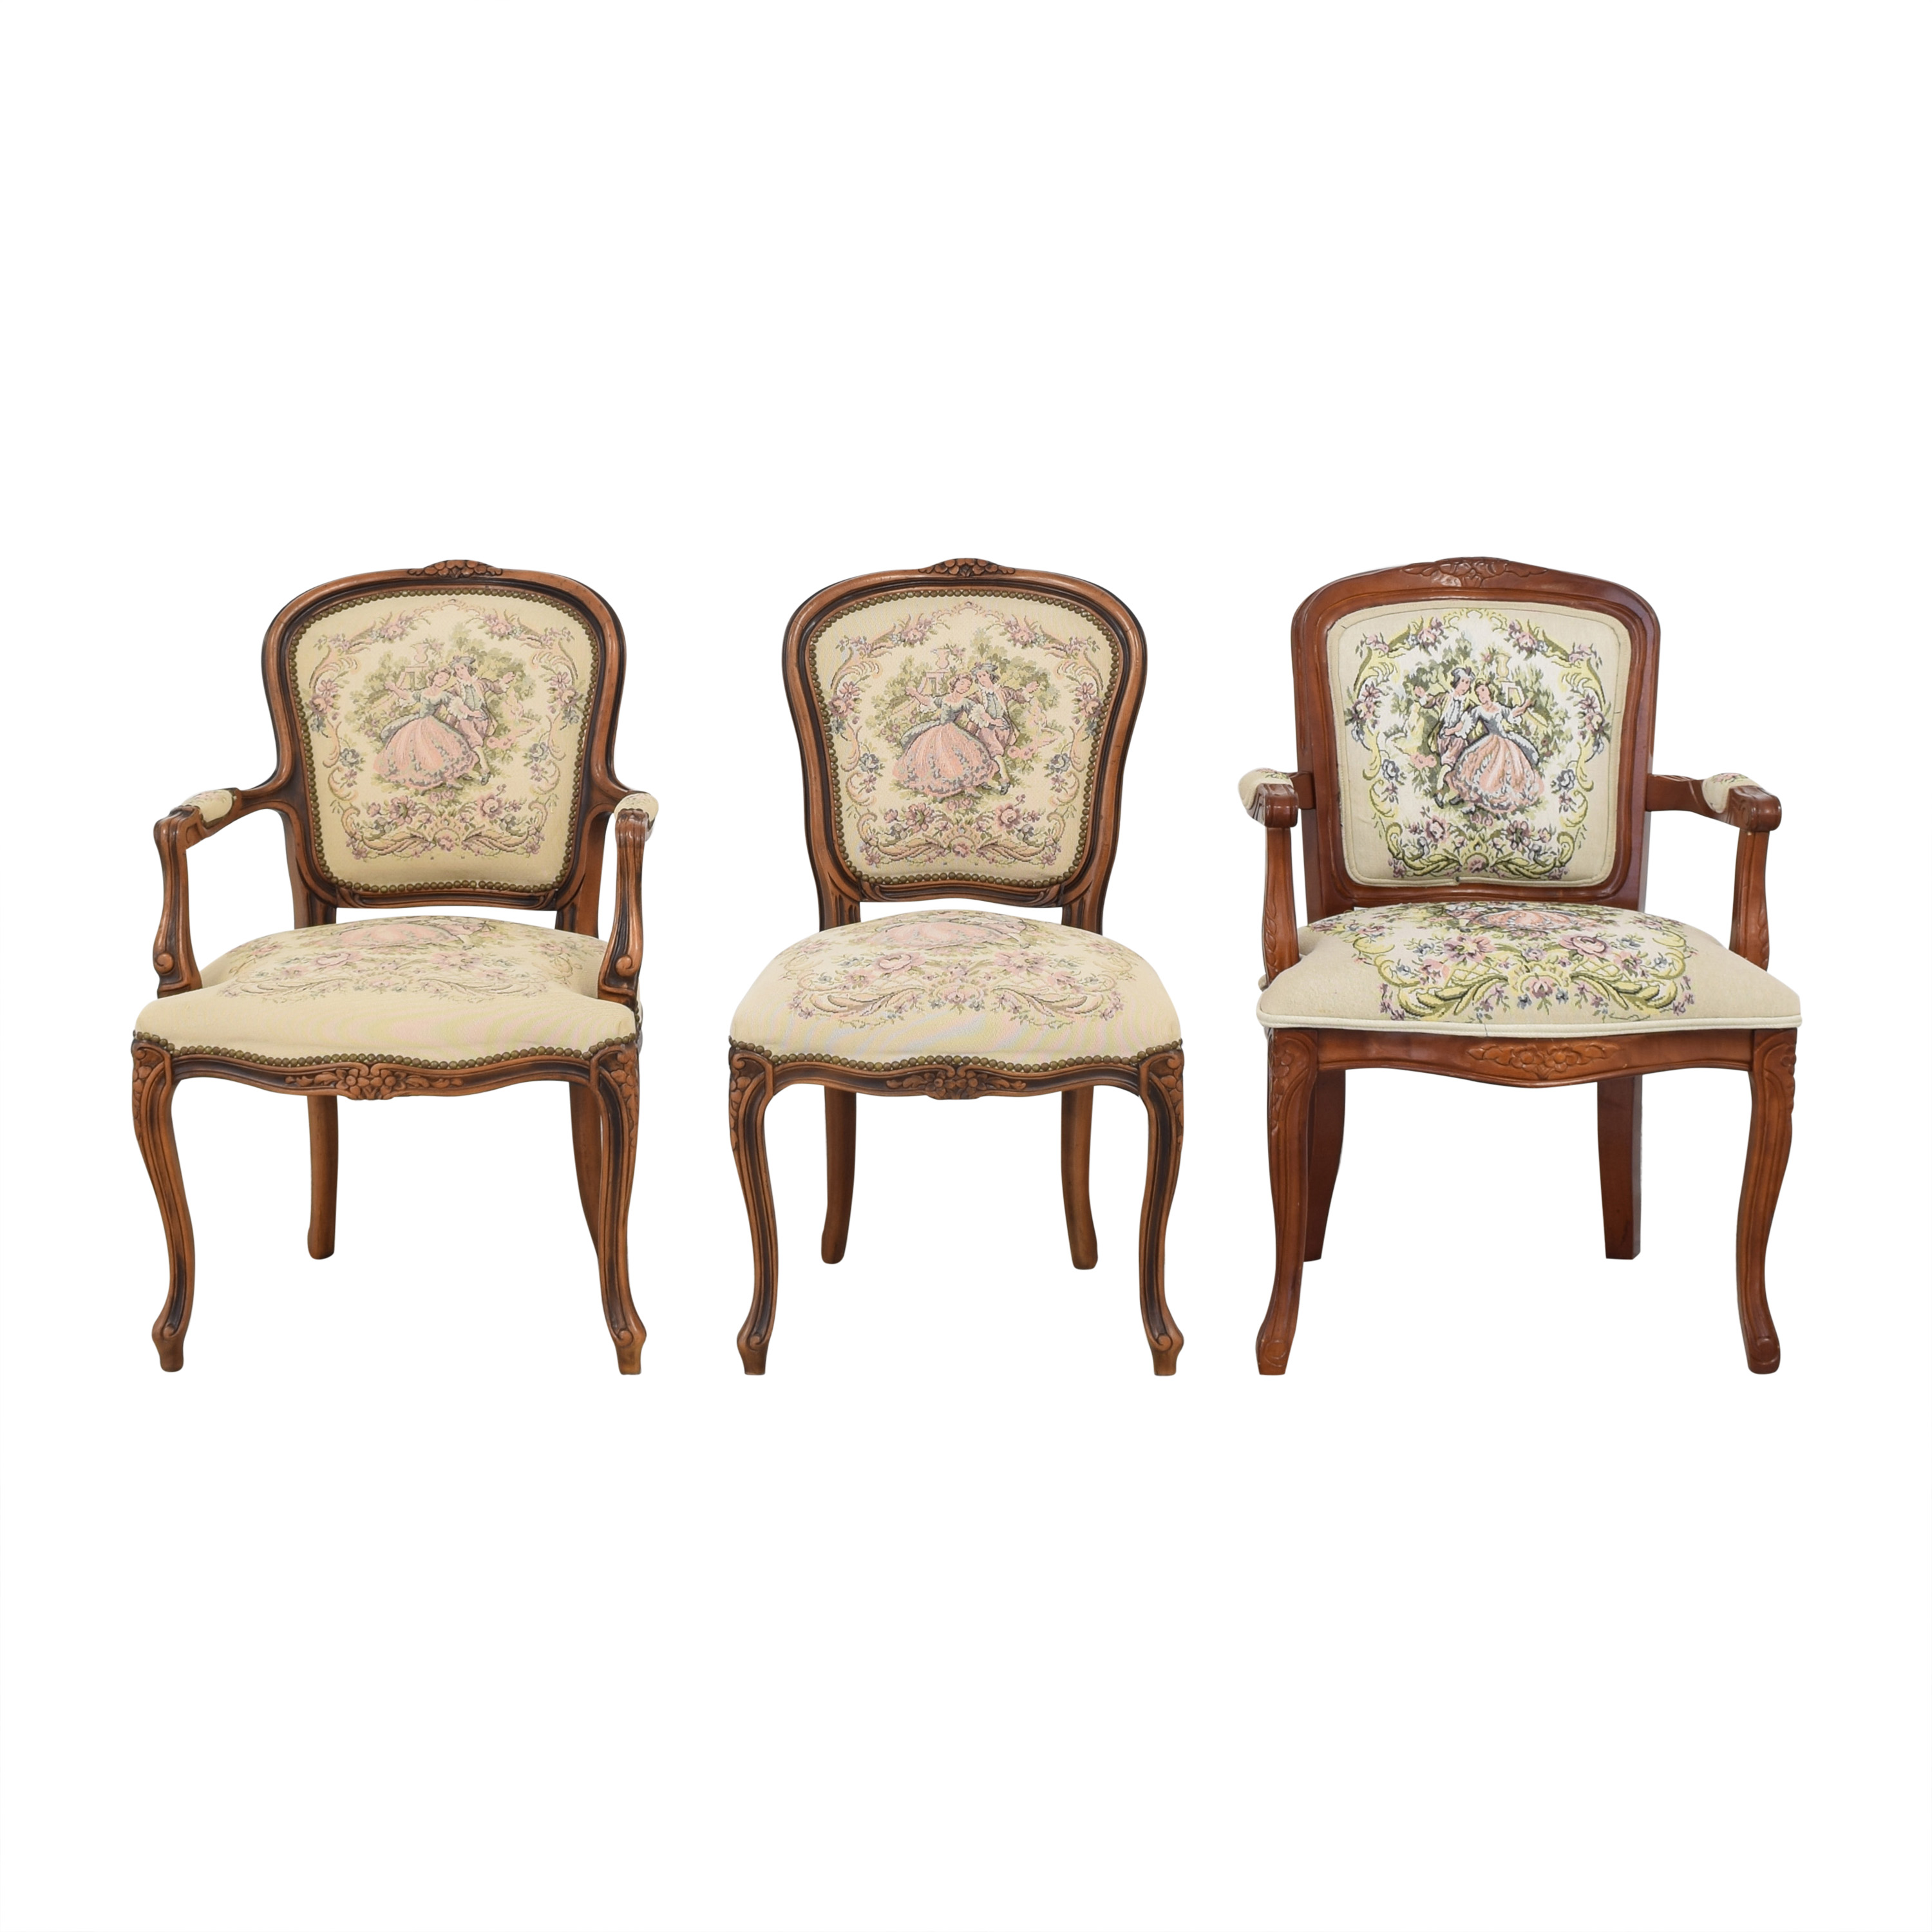 Chateau d'Ax Chateau d'Ax French Provincial Style Dining Chairs ma